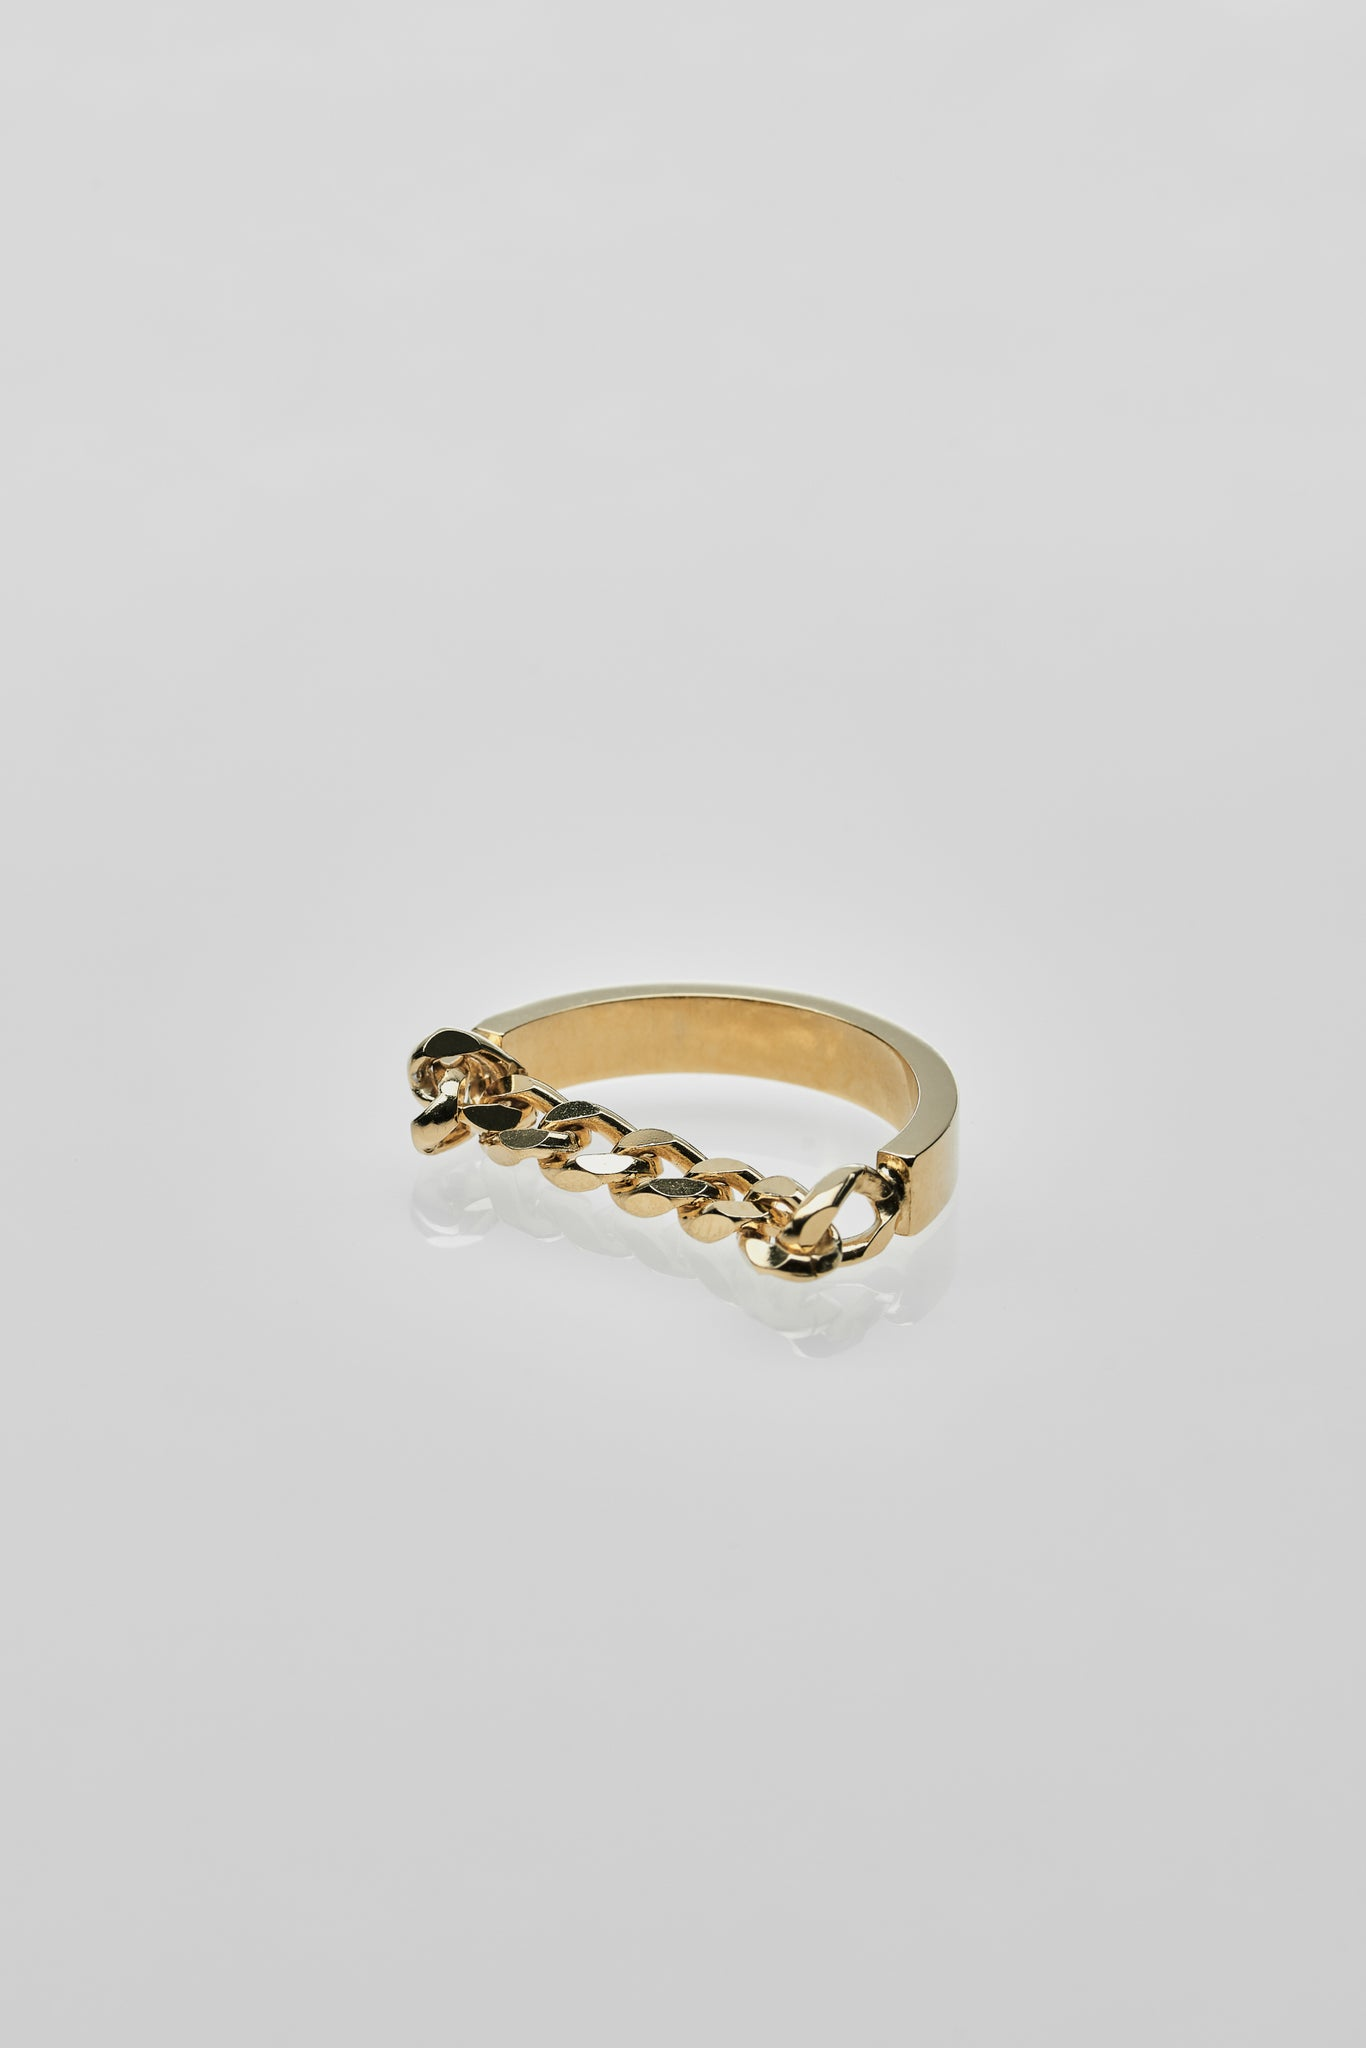 Zaha Ring Gold - Arte Antwerp